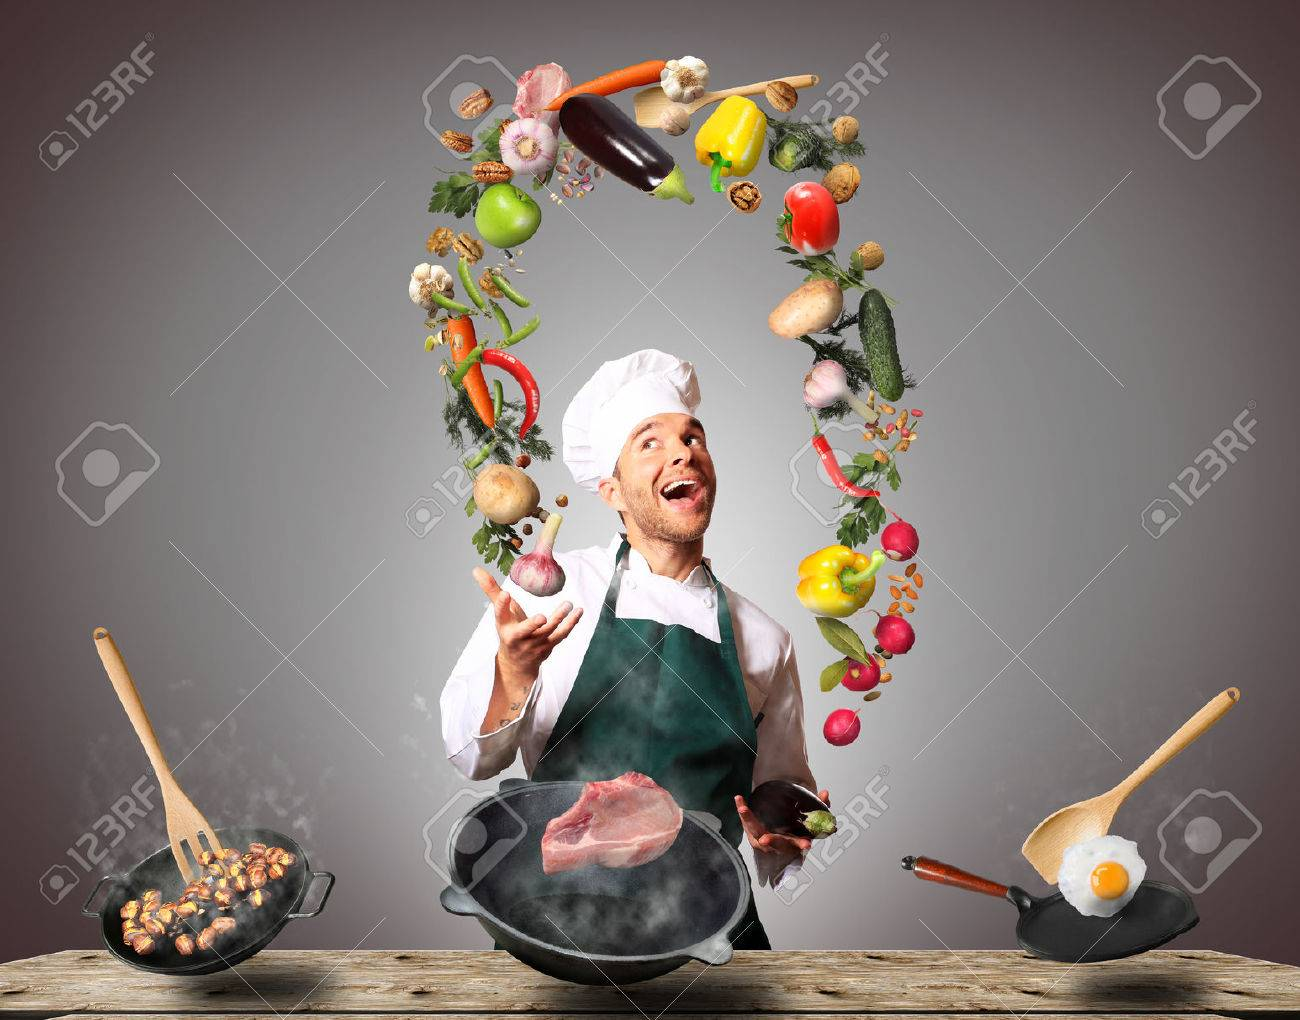 Chef juggling with vegetables and other food in the kitchen - 64915257